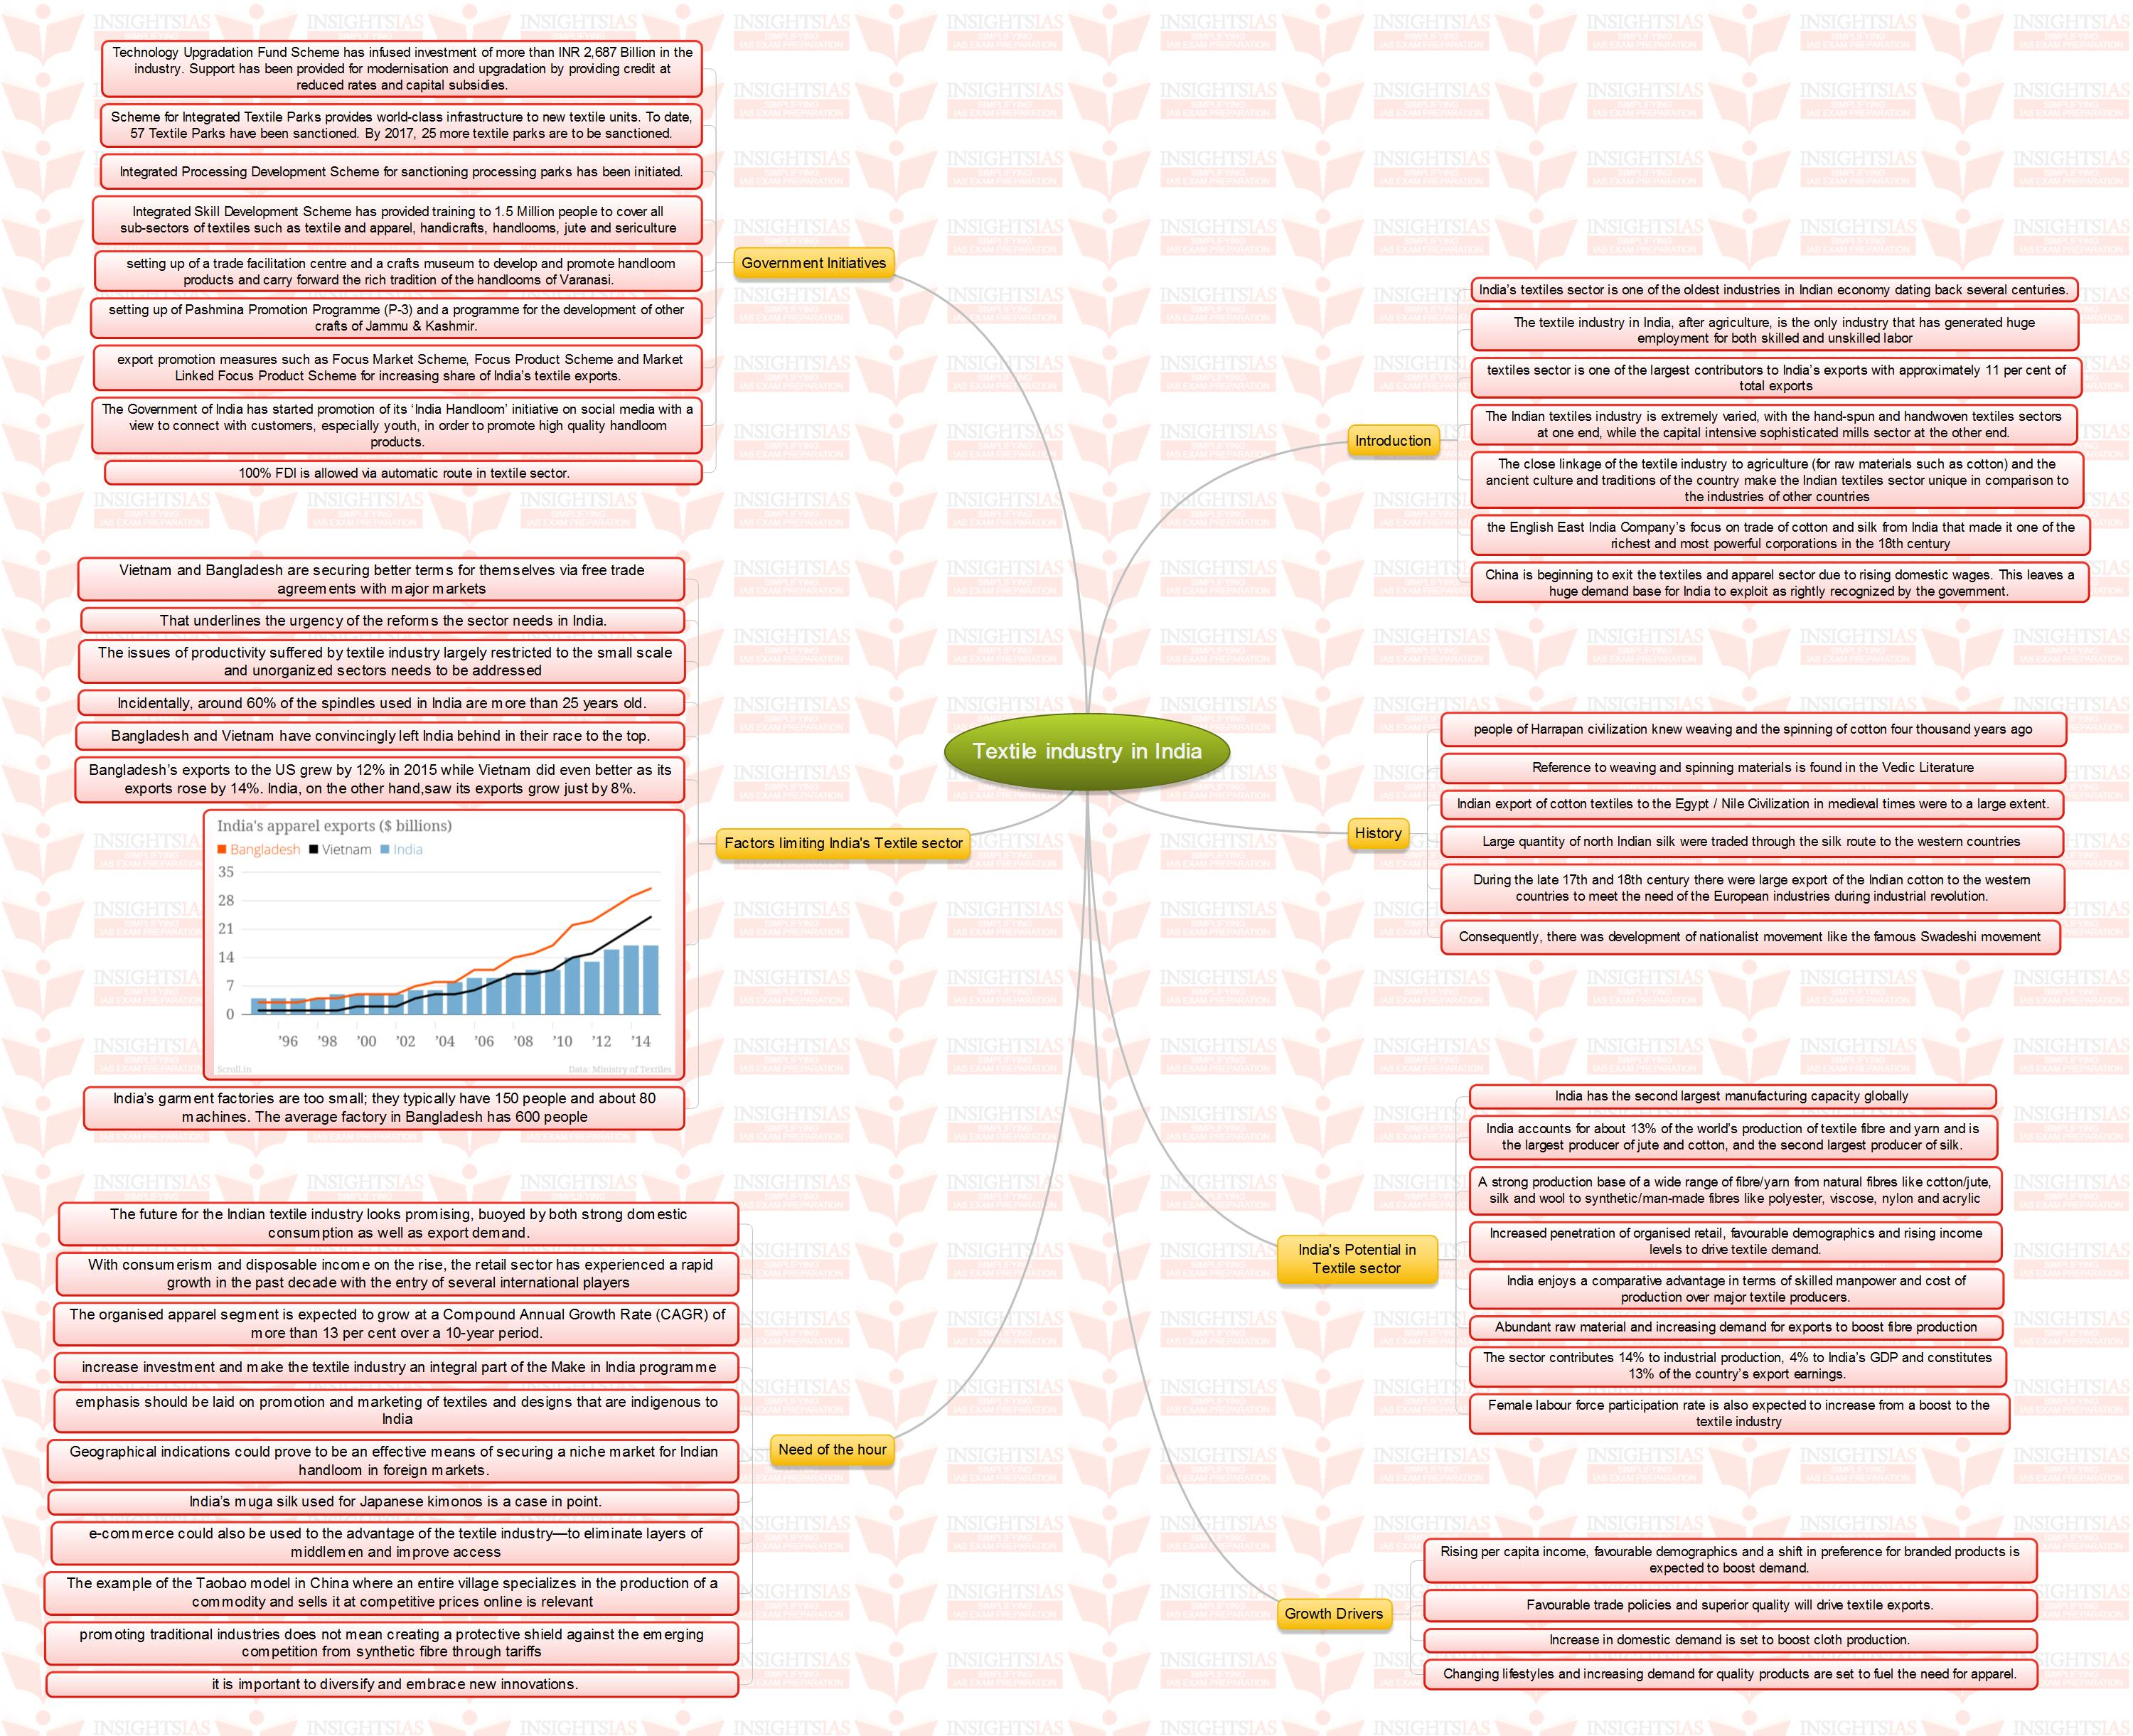 insights mindmaps universal health coverage and textile industry insights mindmaps universal health coverage and textile industry in